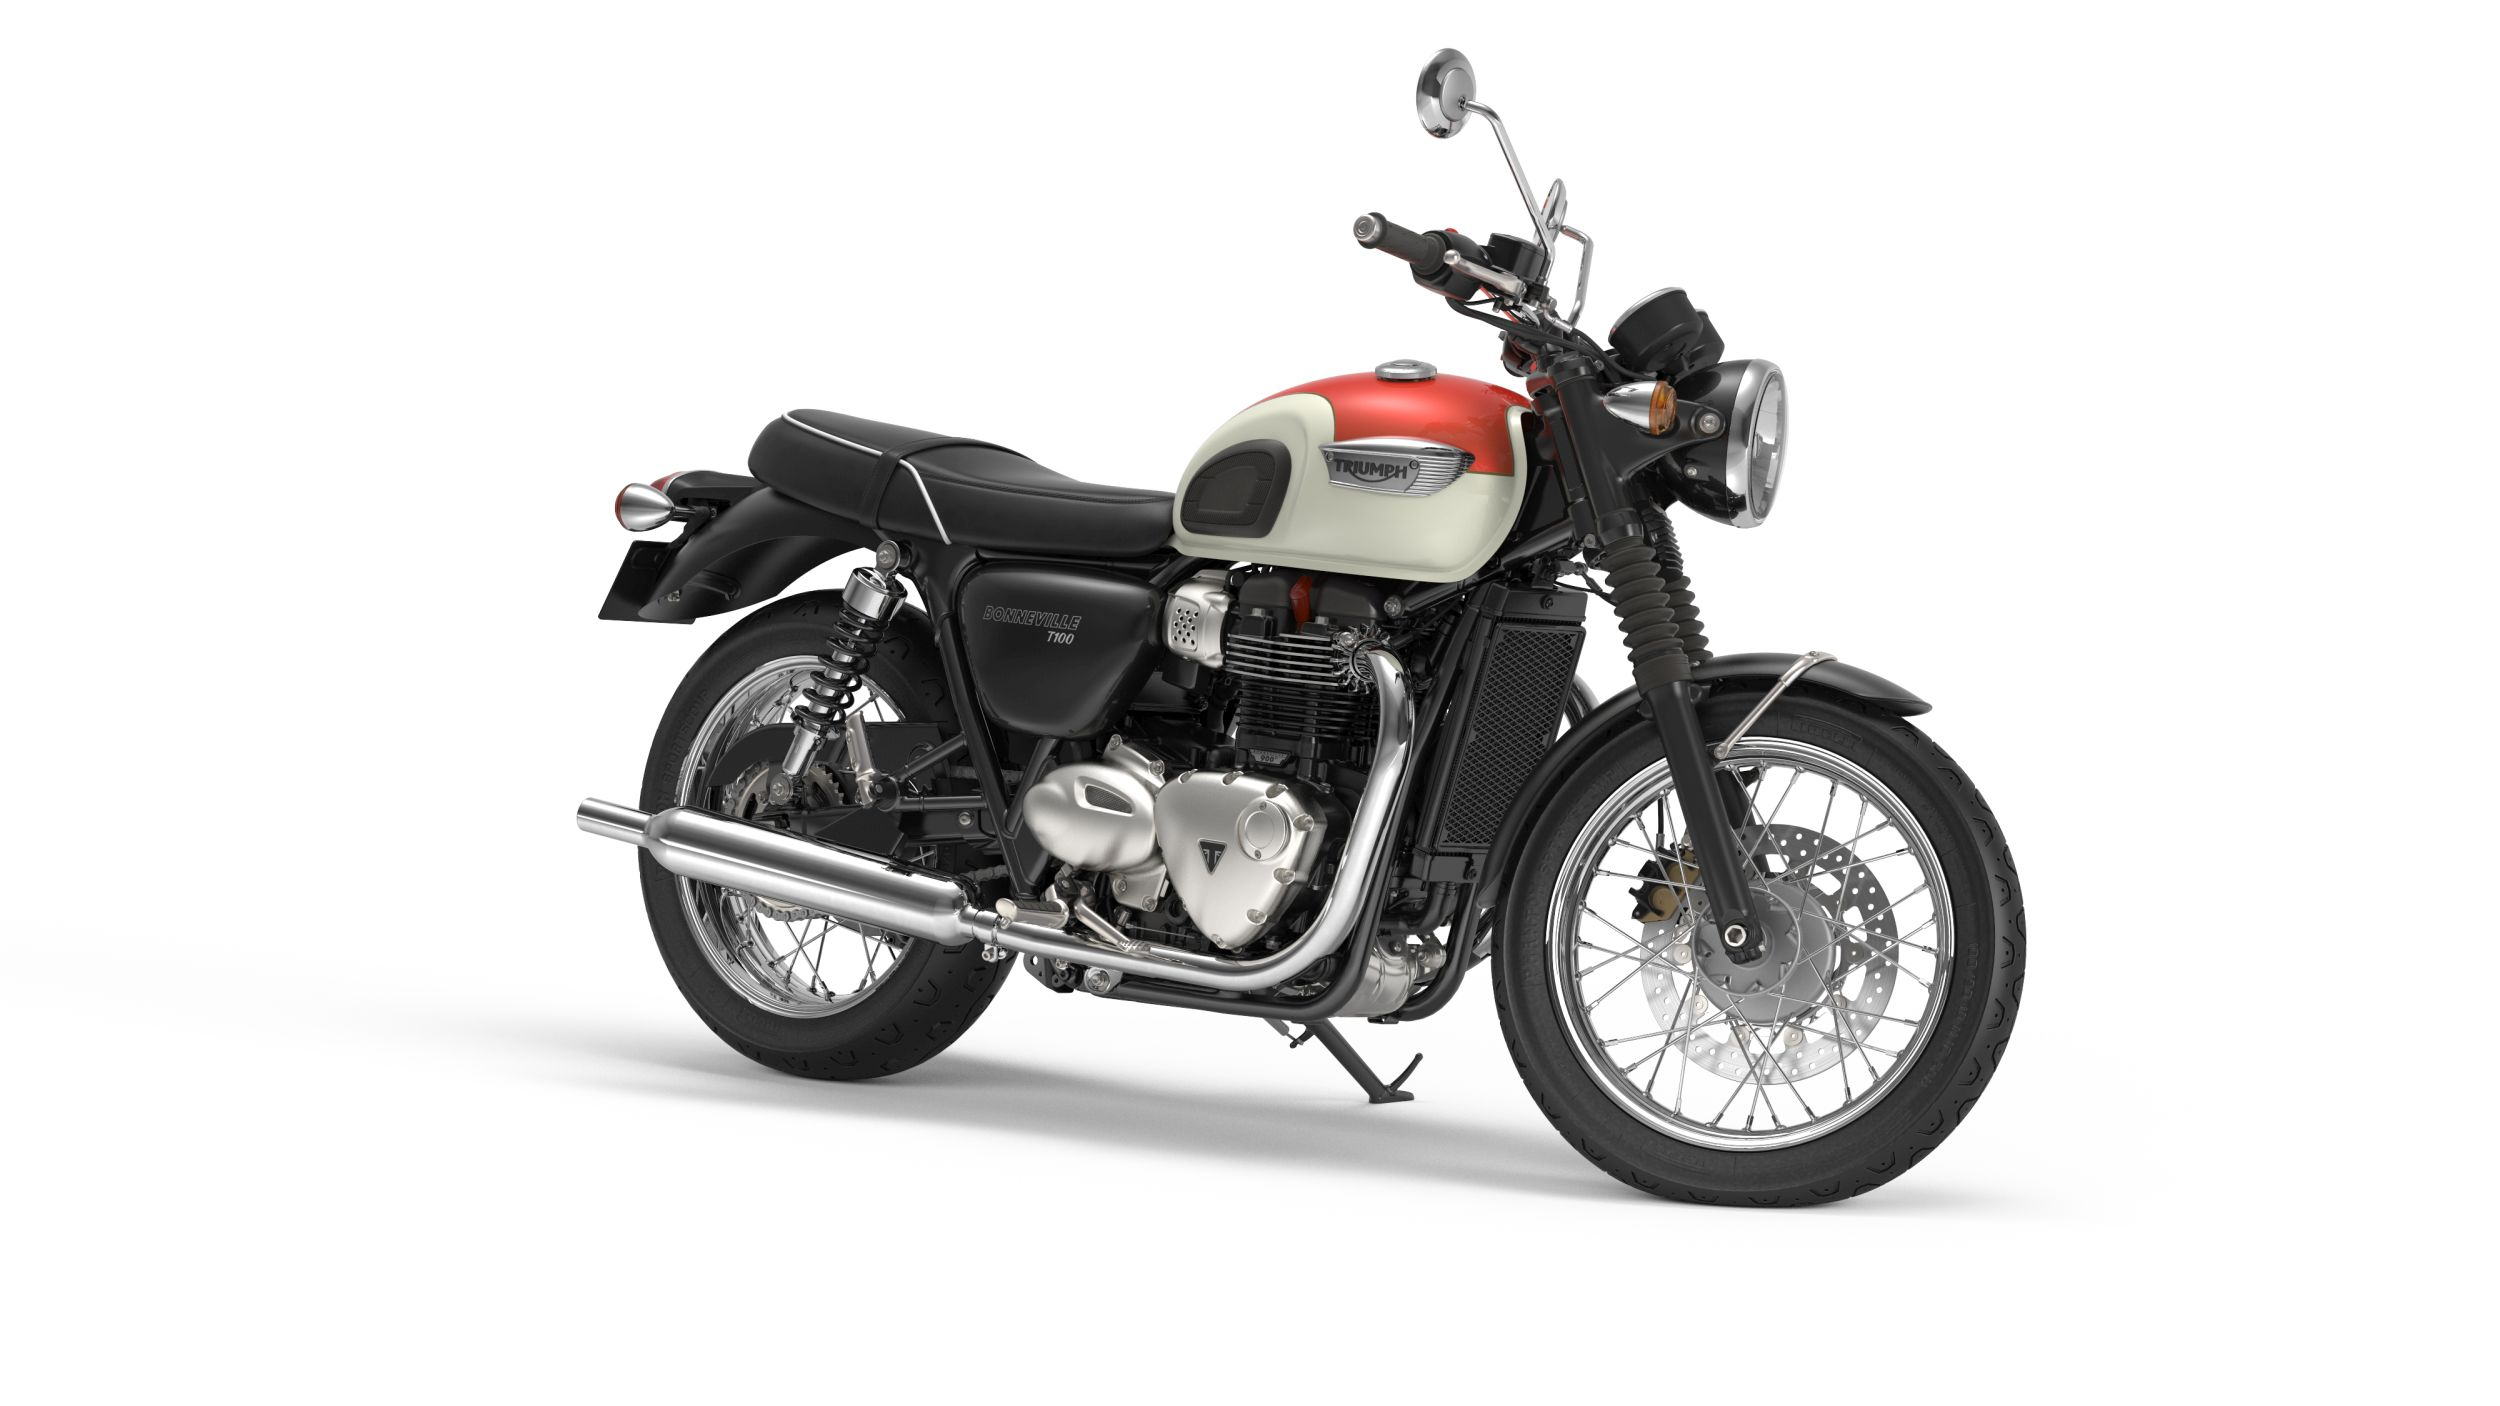 triumph bonneville t100 bilder und technische daten. Black Bedroom Furniture Sets. Home Design Ideas